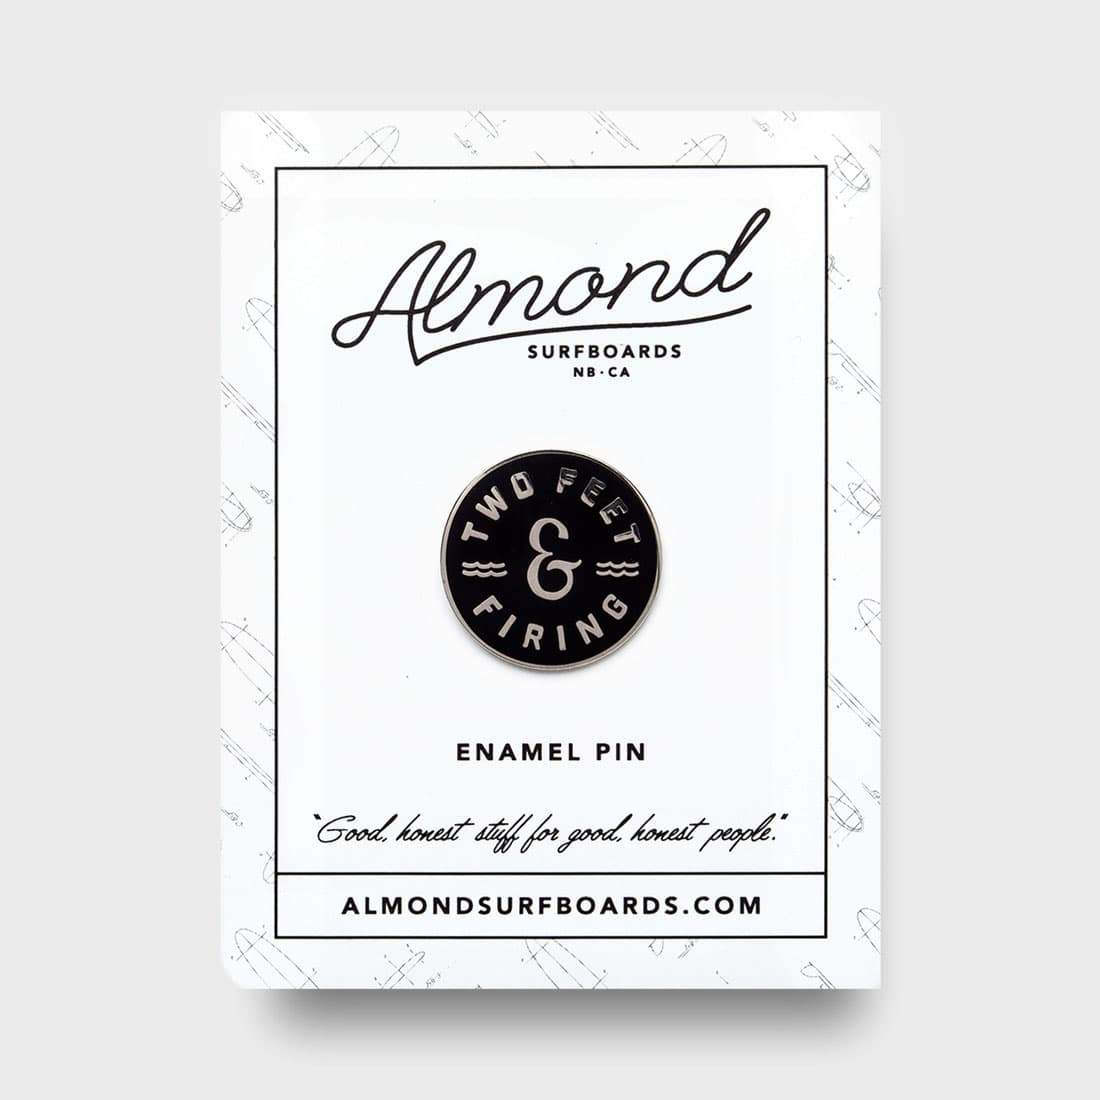 Almond Surfboards Two Feet & Firing Pin Black